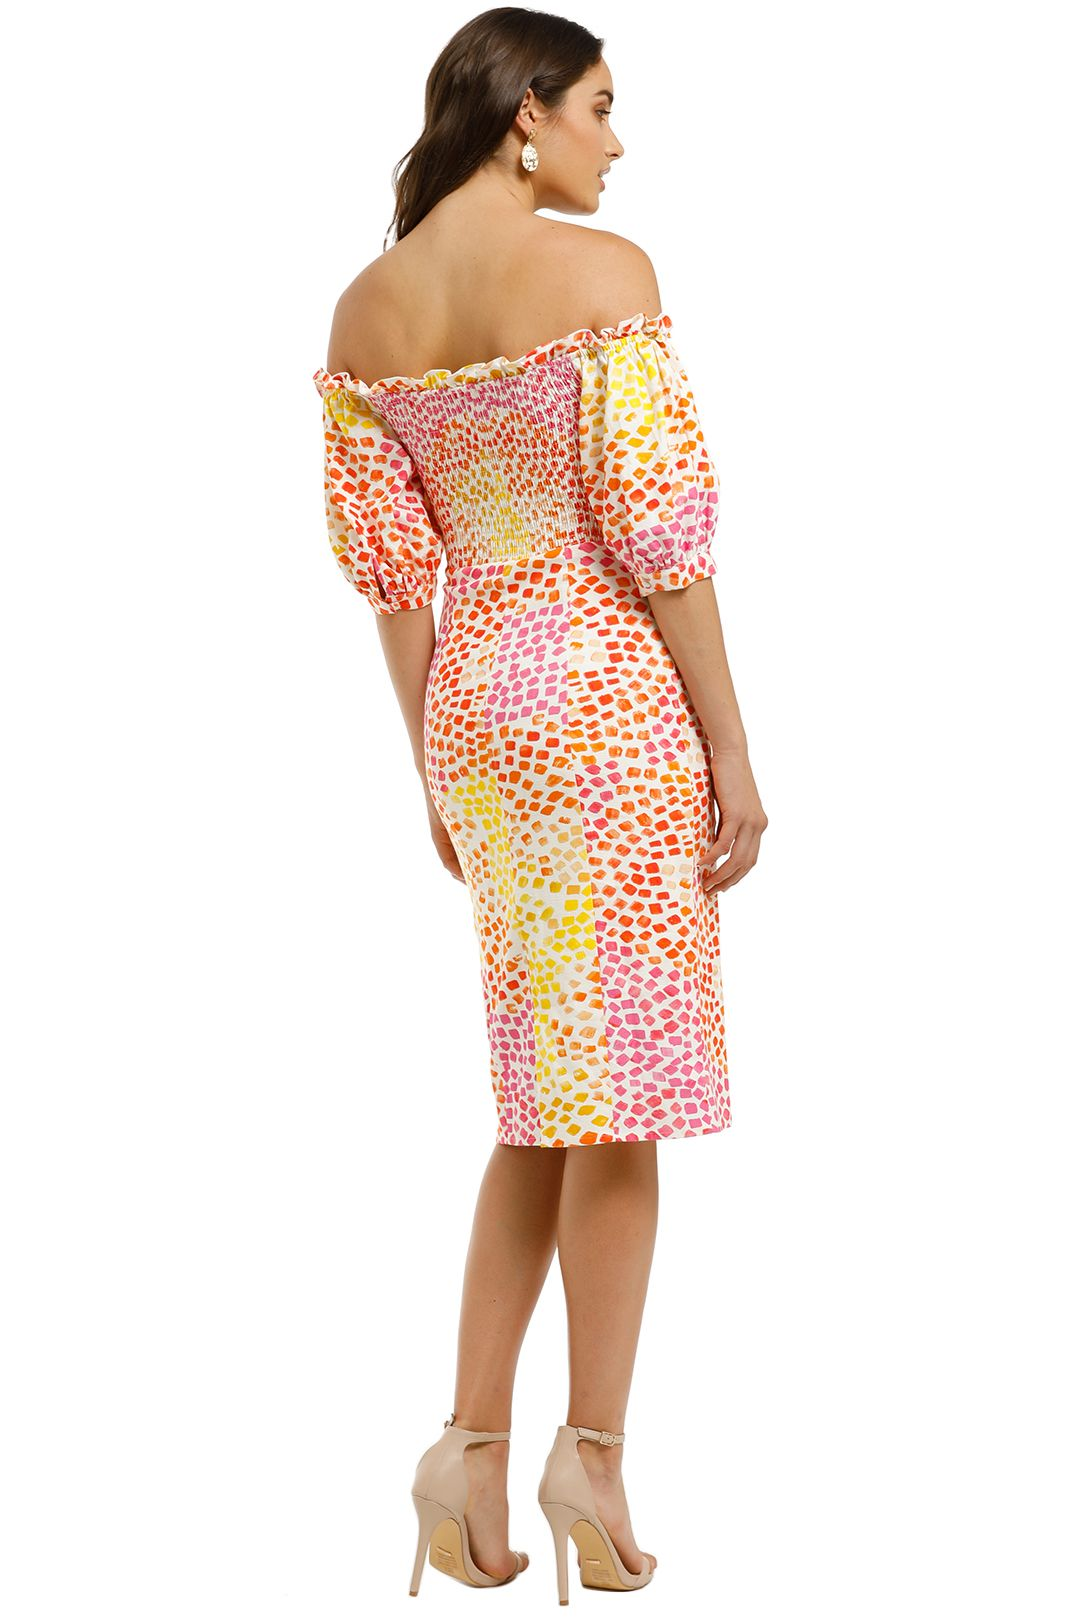 Ministry-of-Style-Gazania-Off-The-Shoulder-Dress-Back